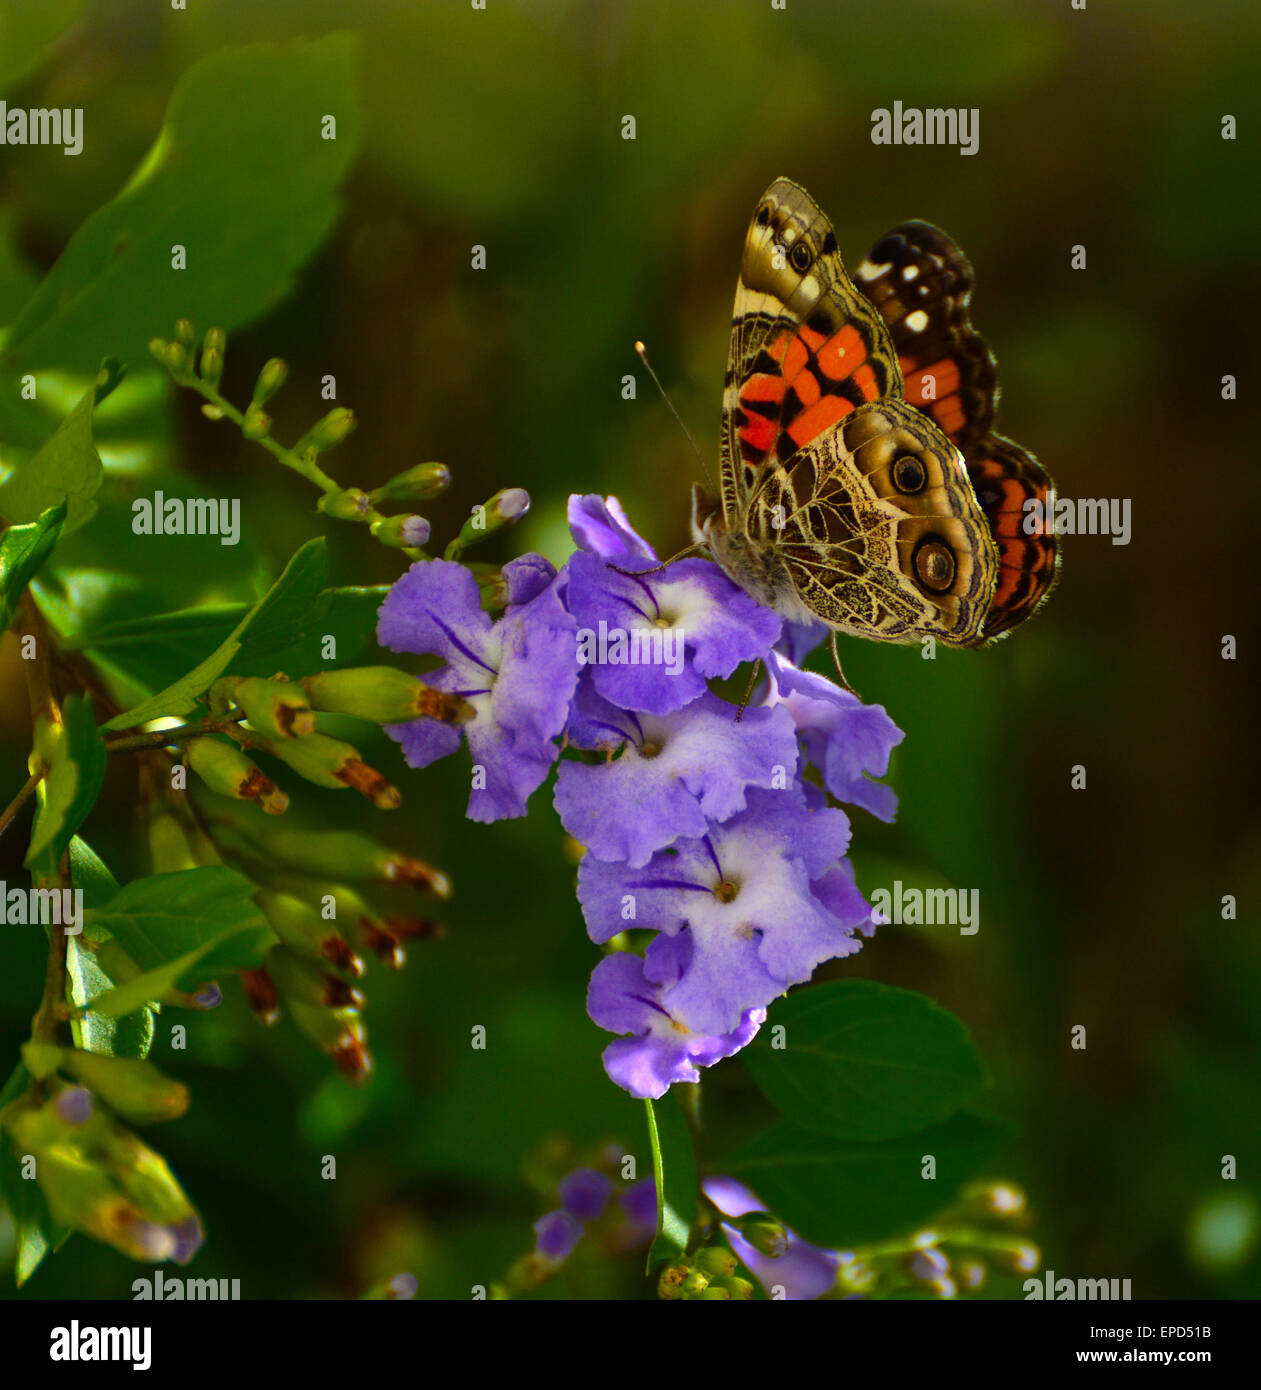 An American Painted Lady butterfly feeding on nectar. Taken in Brooksville, Florida, USA - Stock Image